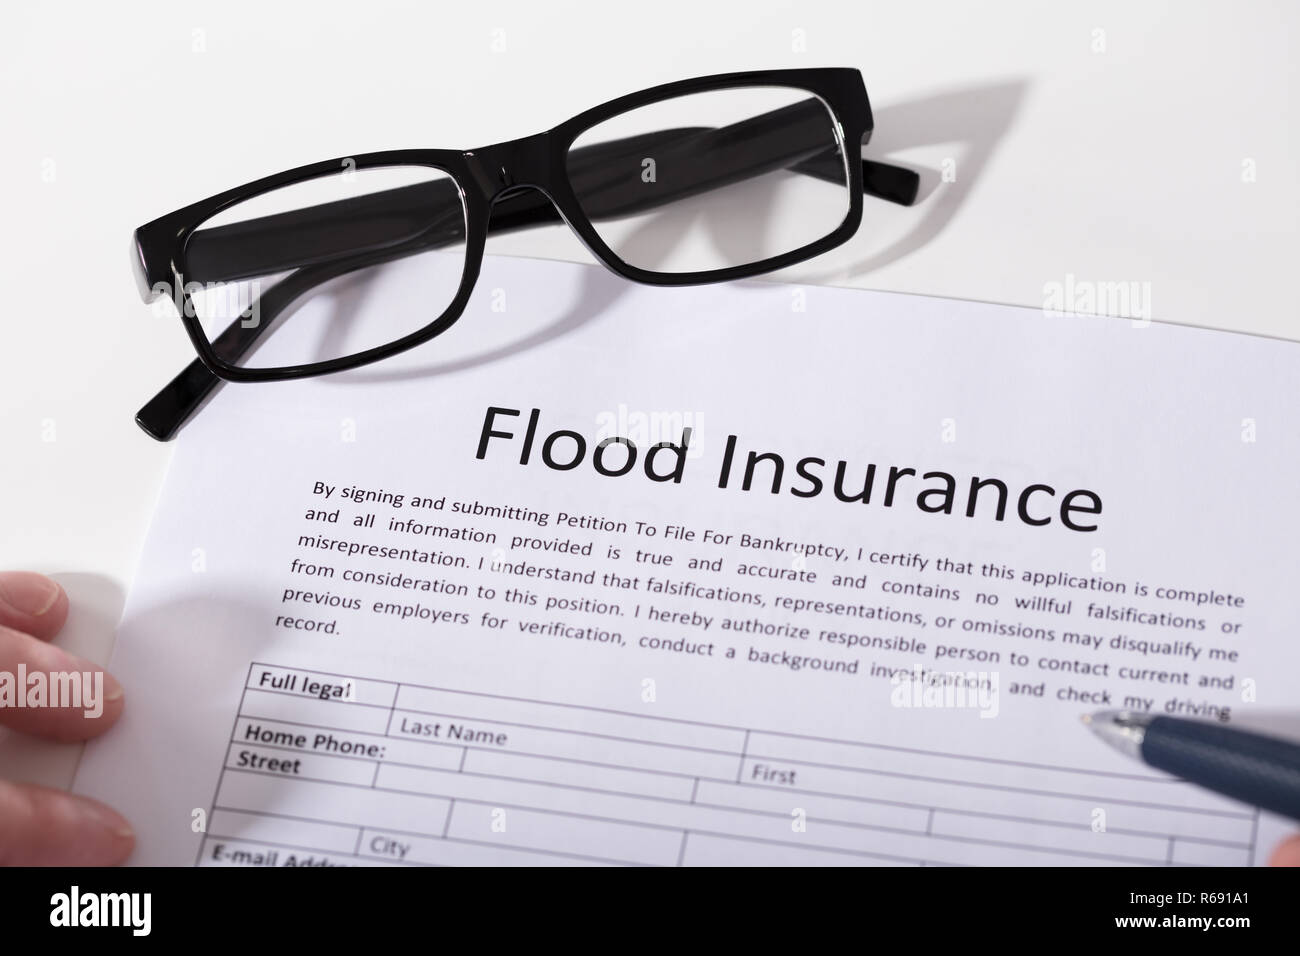 Elevated View Of Flood Insurance Form - Stock Image